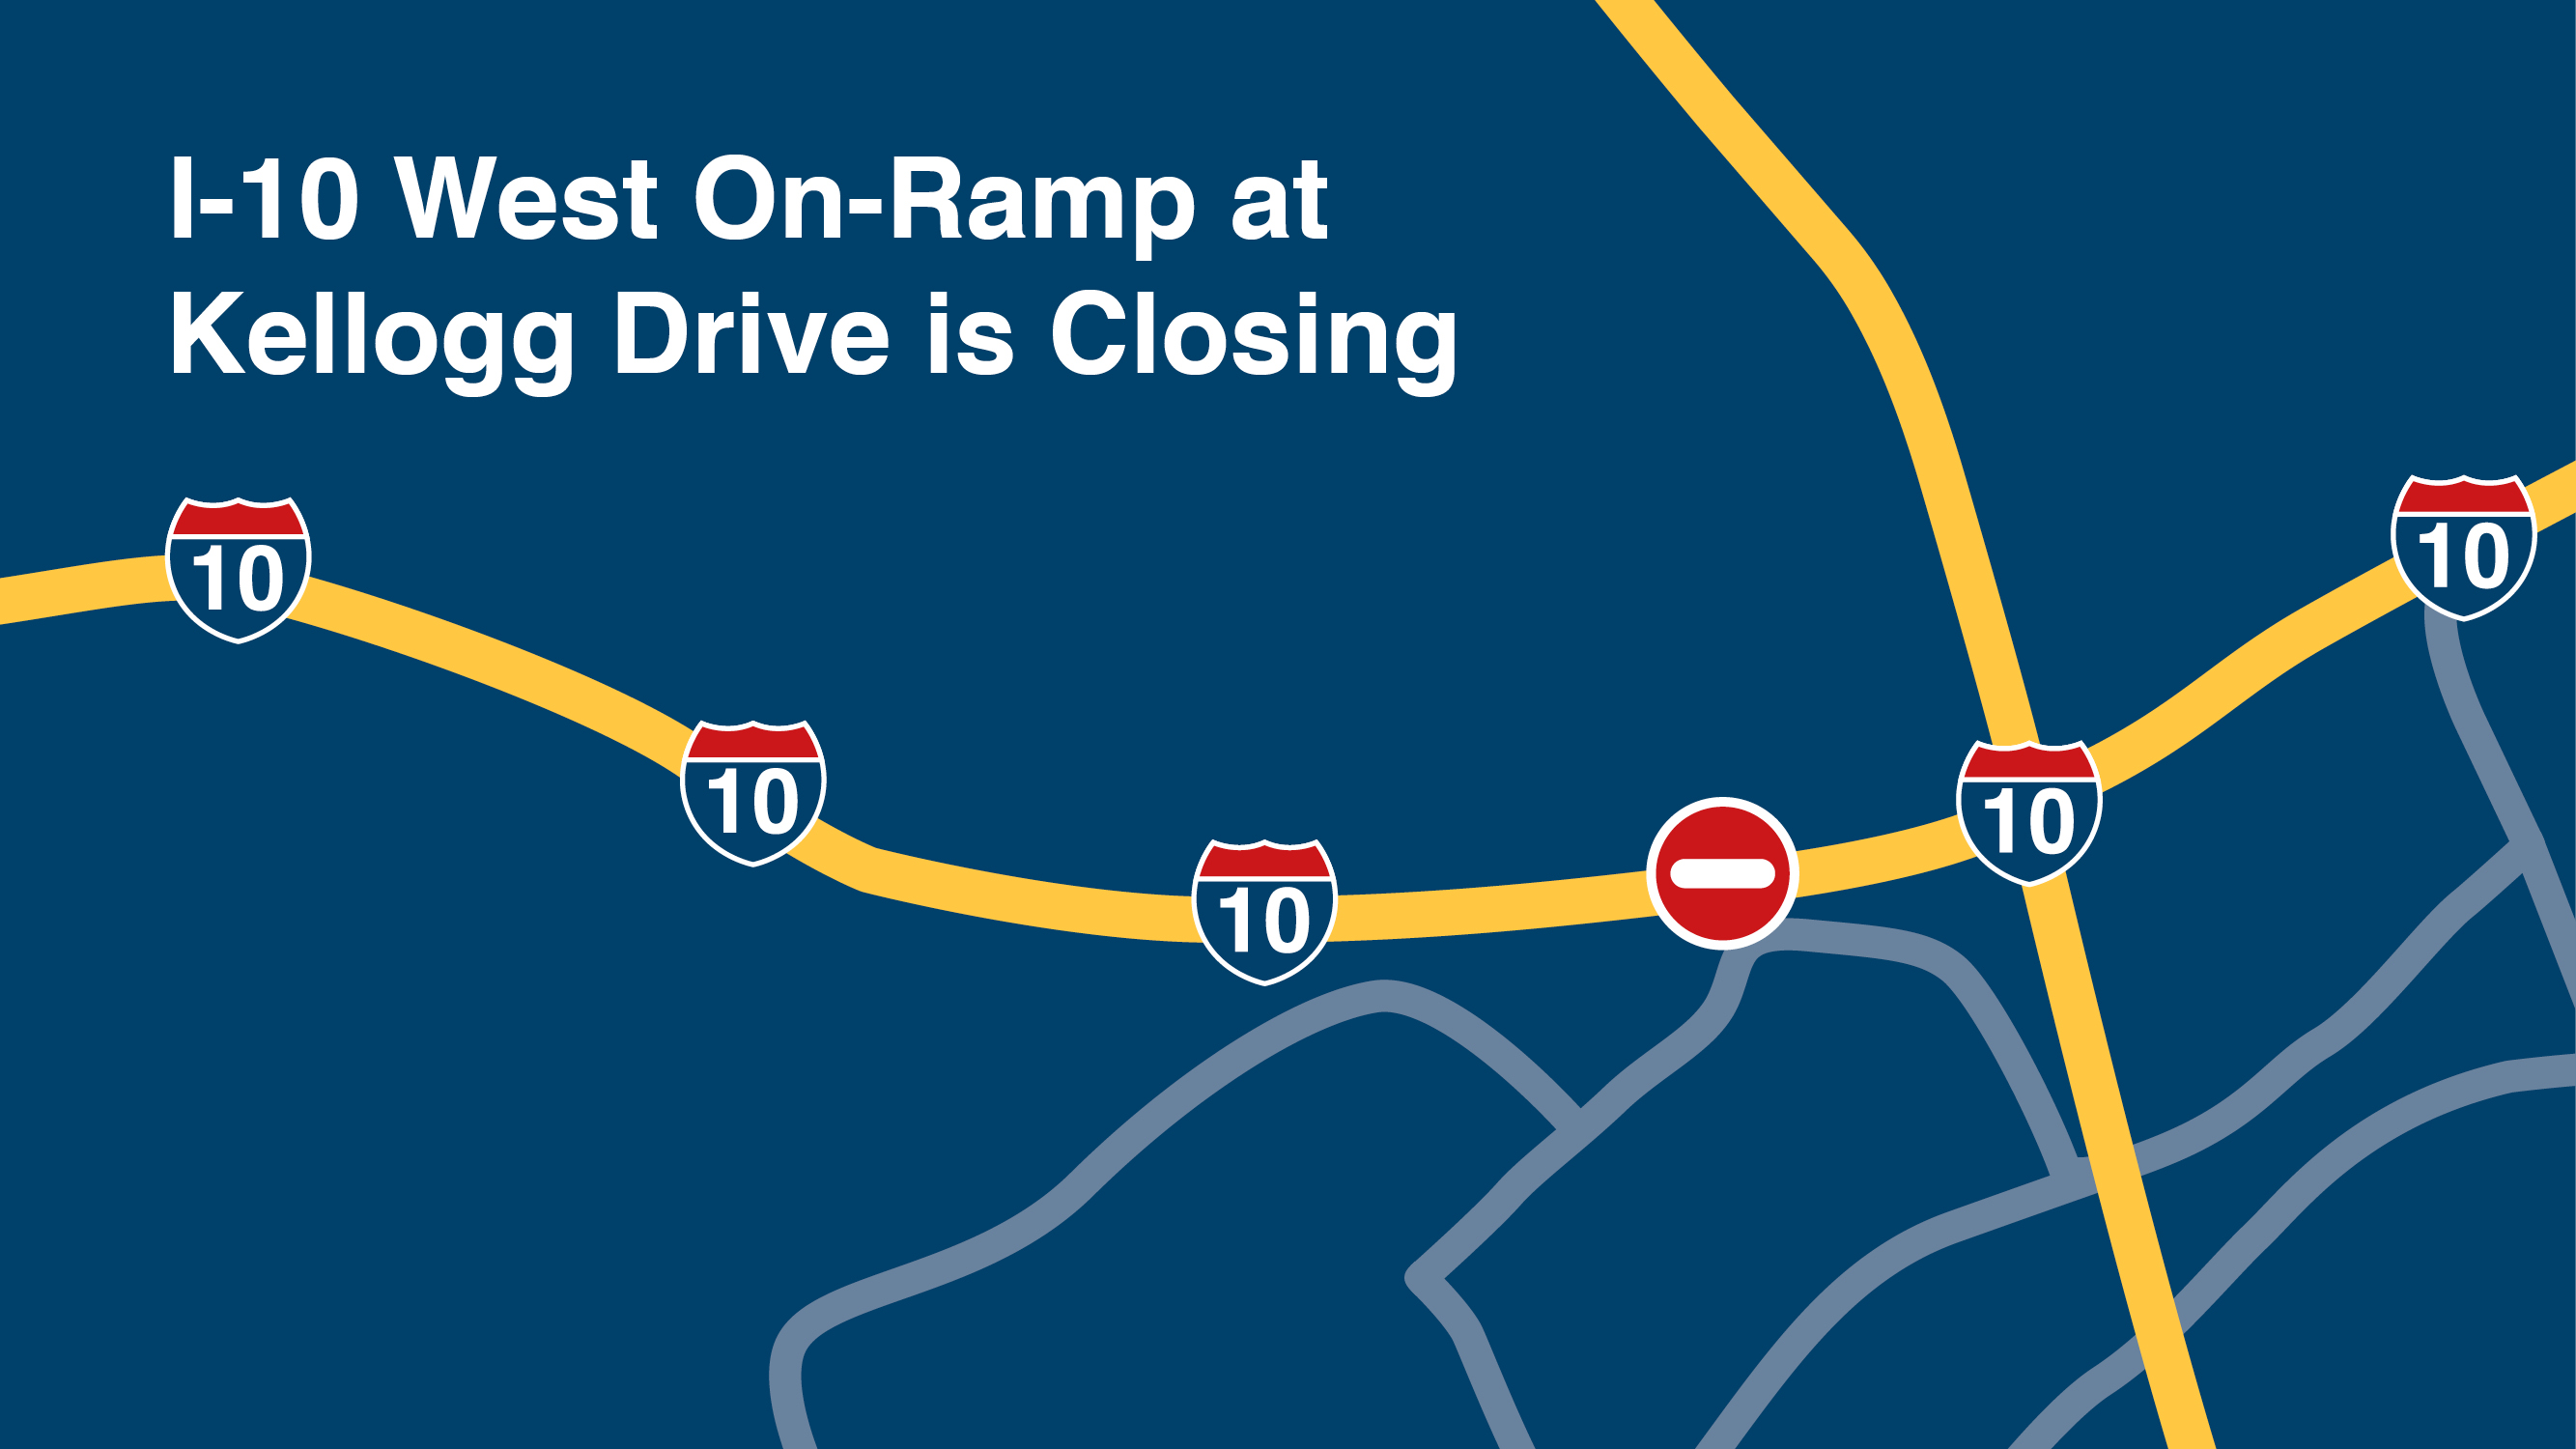 The westbound San Bernardino Freeway (I-10) on-ramp at Kellogg Drive will be closing.